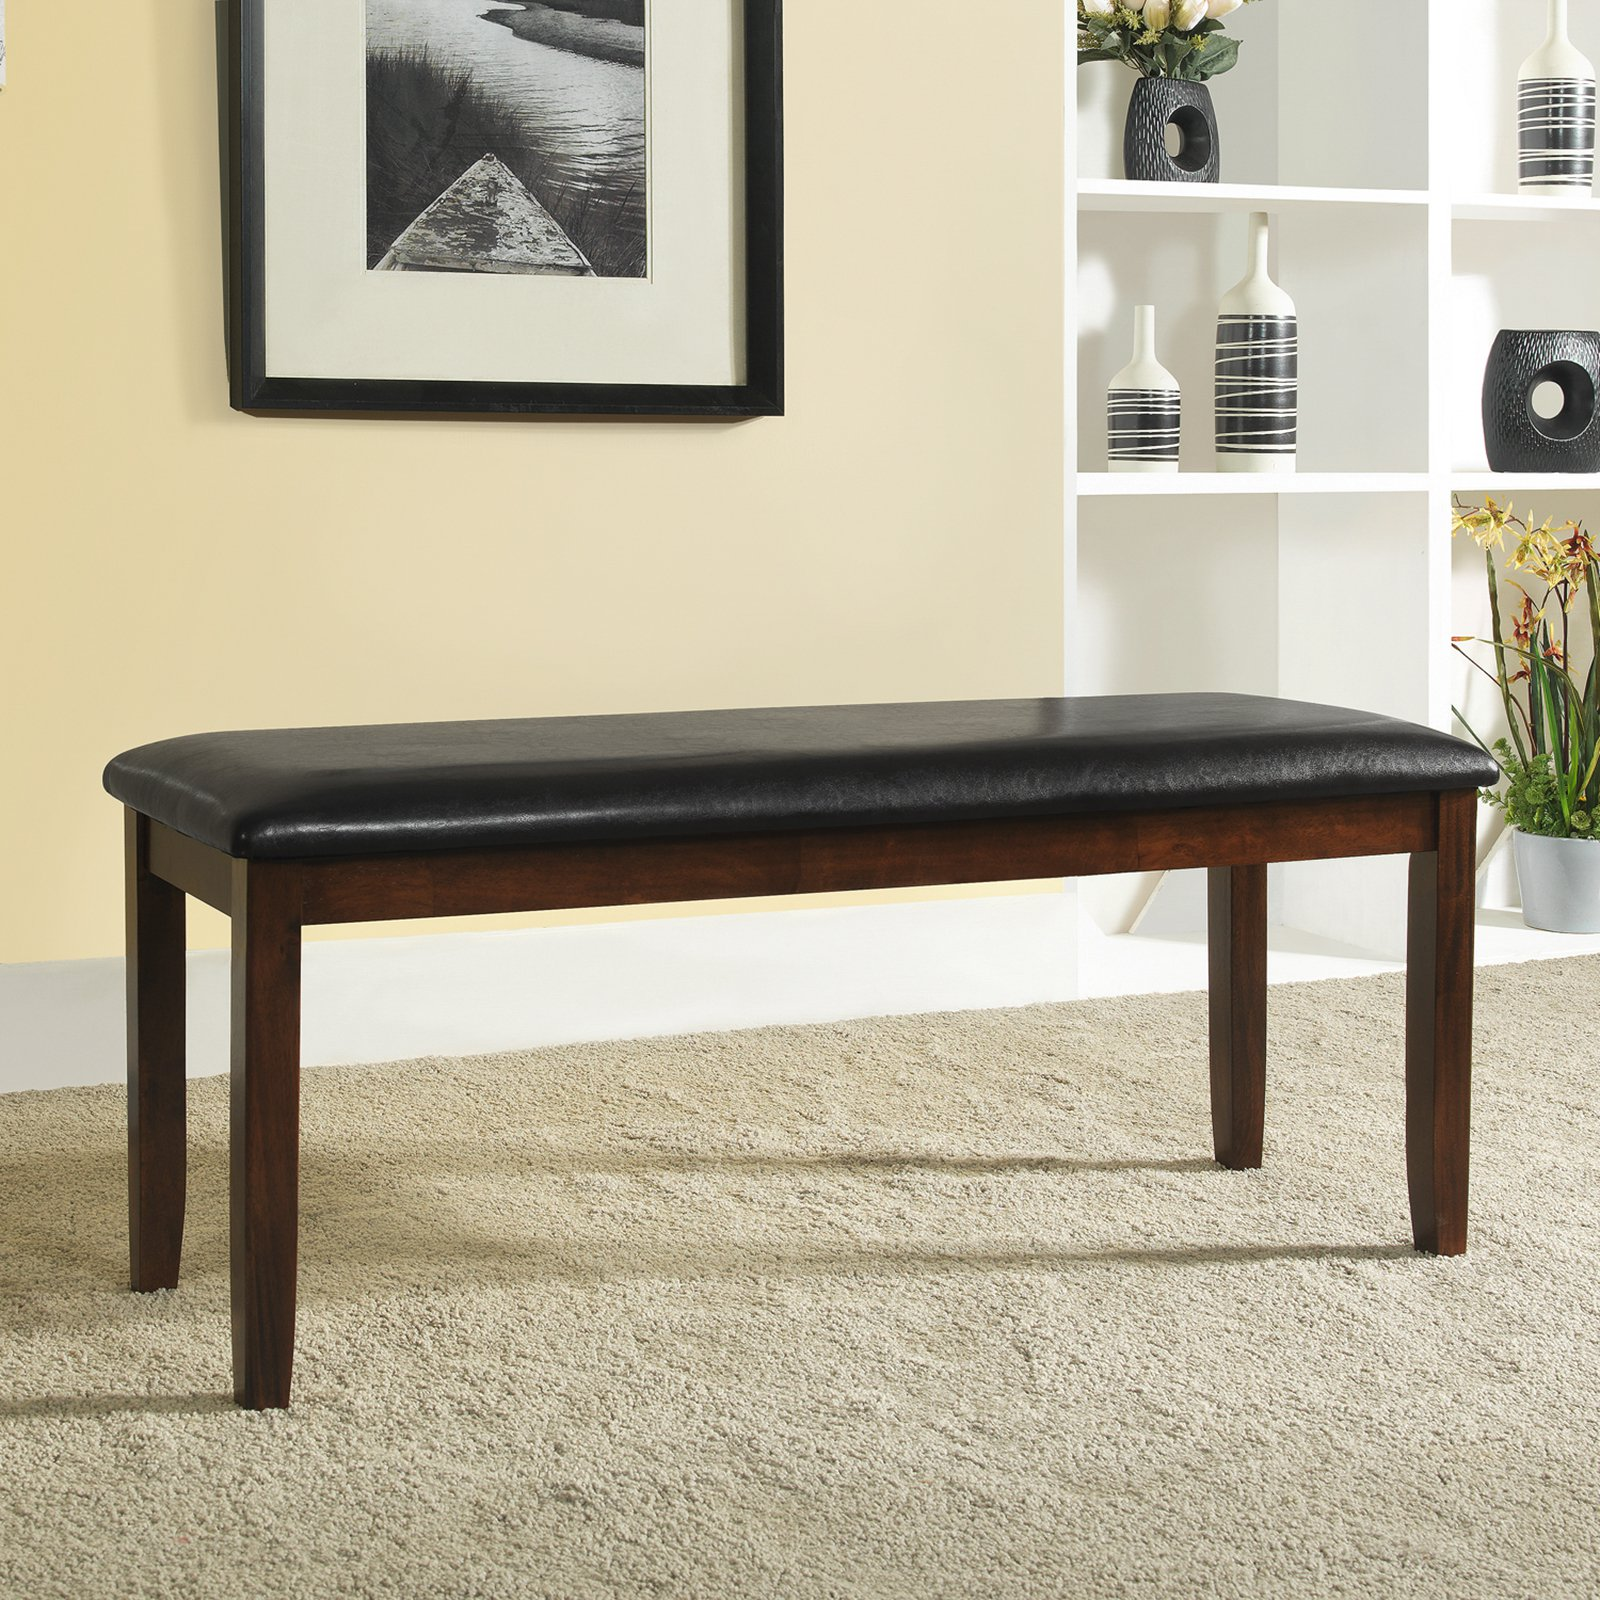 "Weston Home Bi-Cast 48""W Bench, Warm Cherry and Dark Brown Faux Leather"